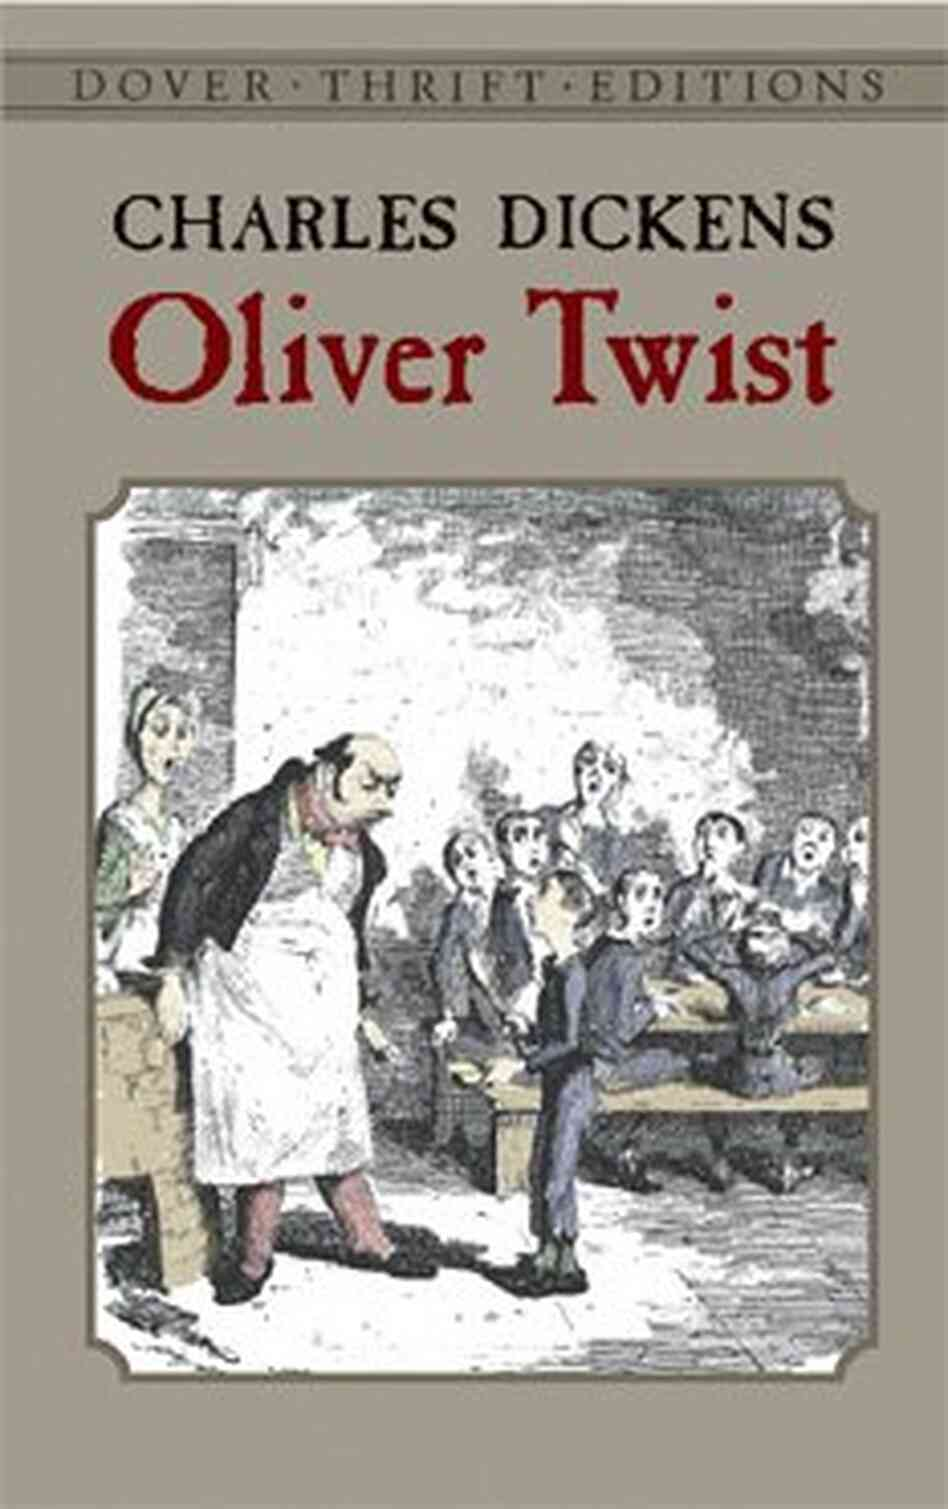 a summary of oliver twist by charles dickens Cue 19th century london, an adorable little orphan boy with a heart of gold, and evil street urchin guy trying to corrupt him sprinkle in some rich people and you' ve got yourself oliver twist this video installment poses the question of why fagin was not able to corrupt oliver was it his lame tactics, or was.